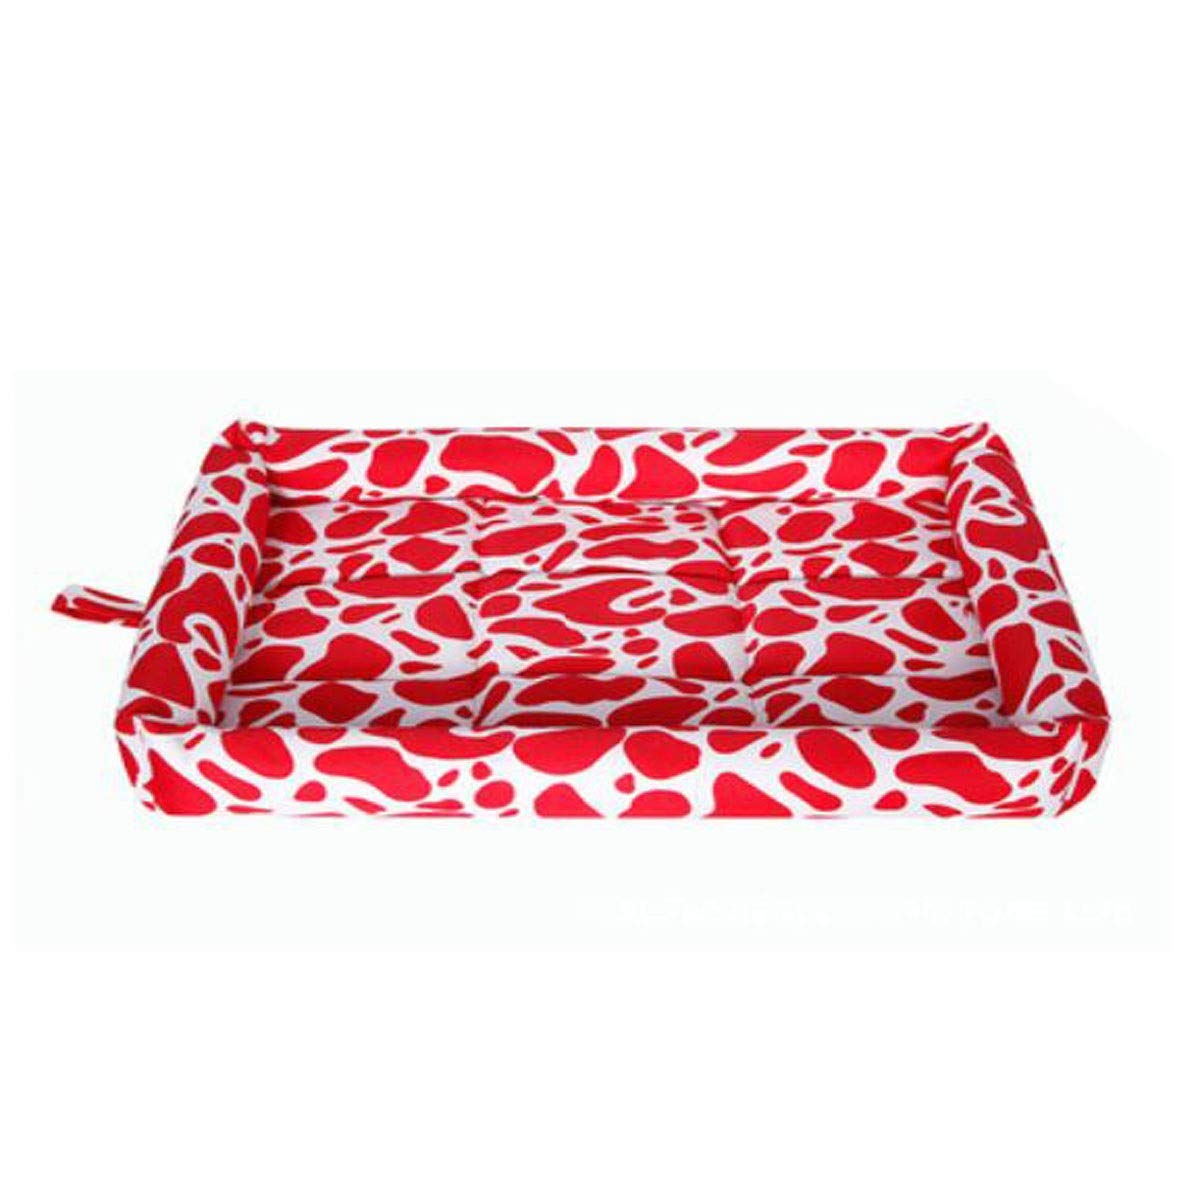 Camouflage red XXL Dog Bed, Spring Large and Medium Dog Orthopedic Sleeping Bed, Can Be Placed On The Floor Car Dog Cage, Camouflage bluee, Camouflage orange, Camouflage Red XXL (color   Camouflage bluee, Size   XL)